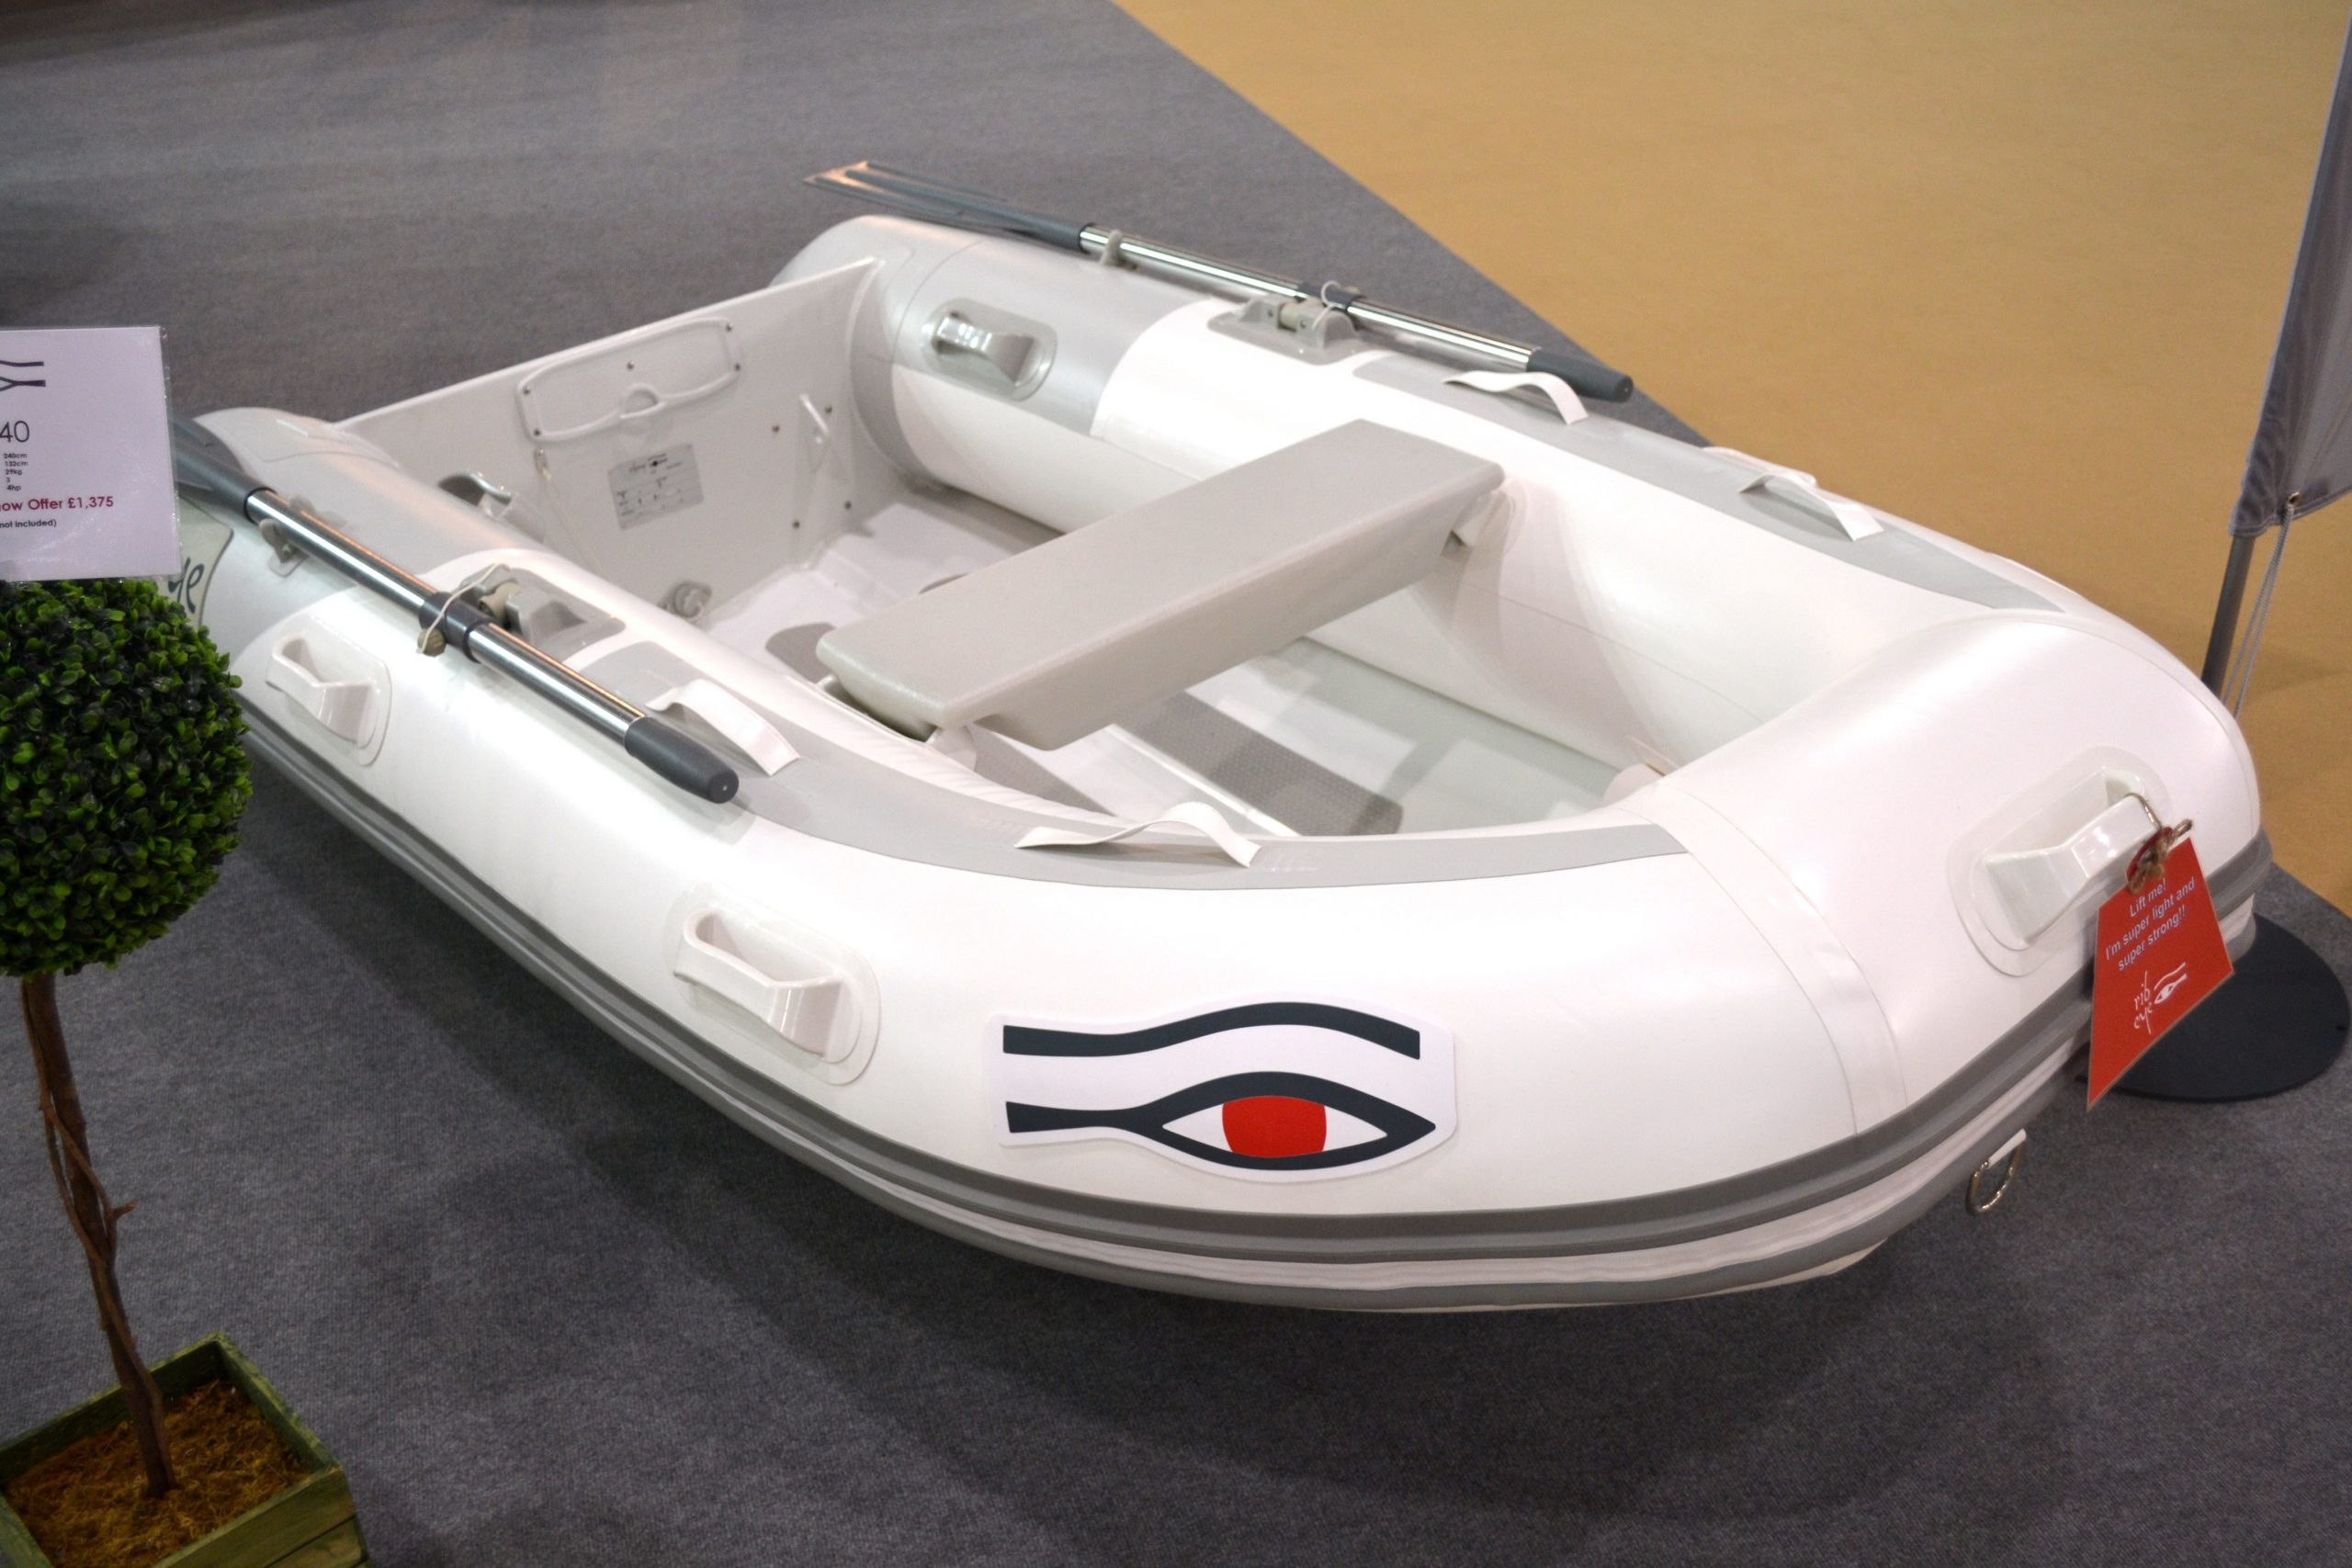 life-raft-lifeboat-inf...ble-dingy-241789 (1)